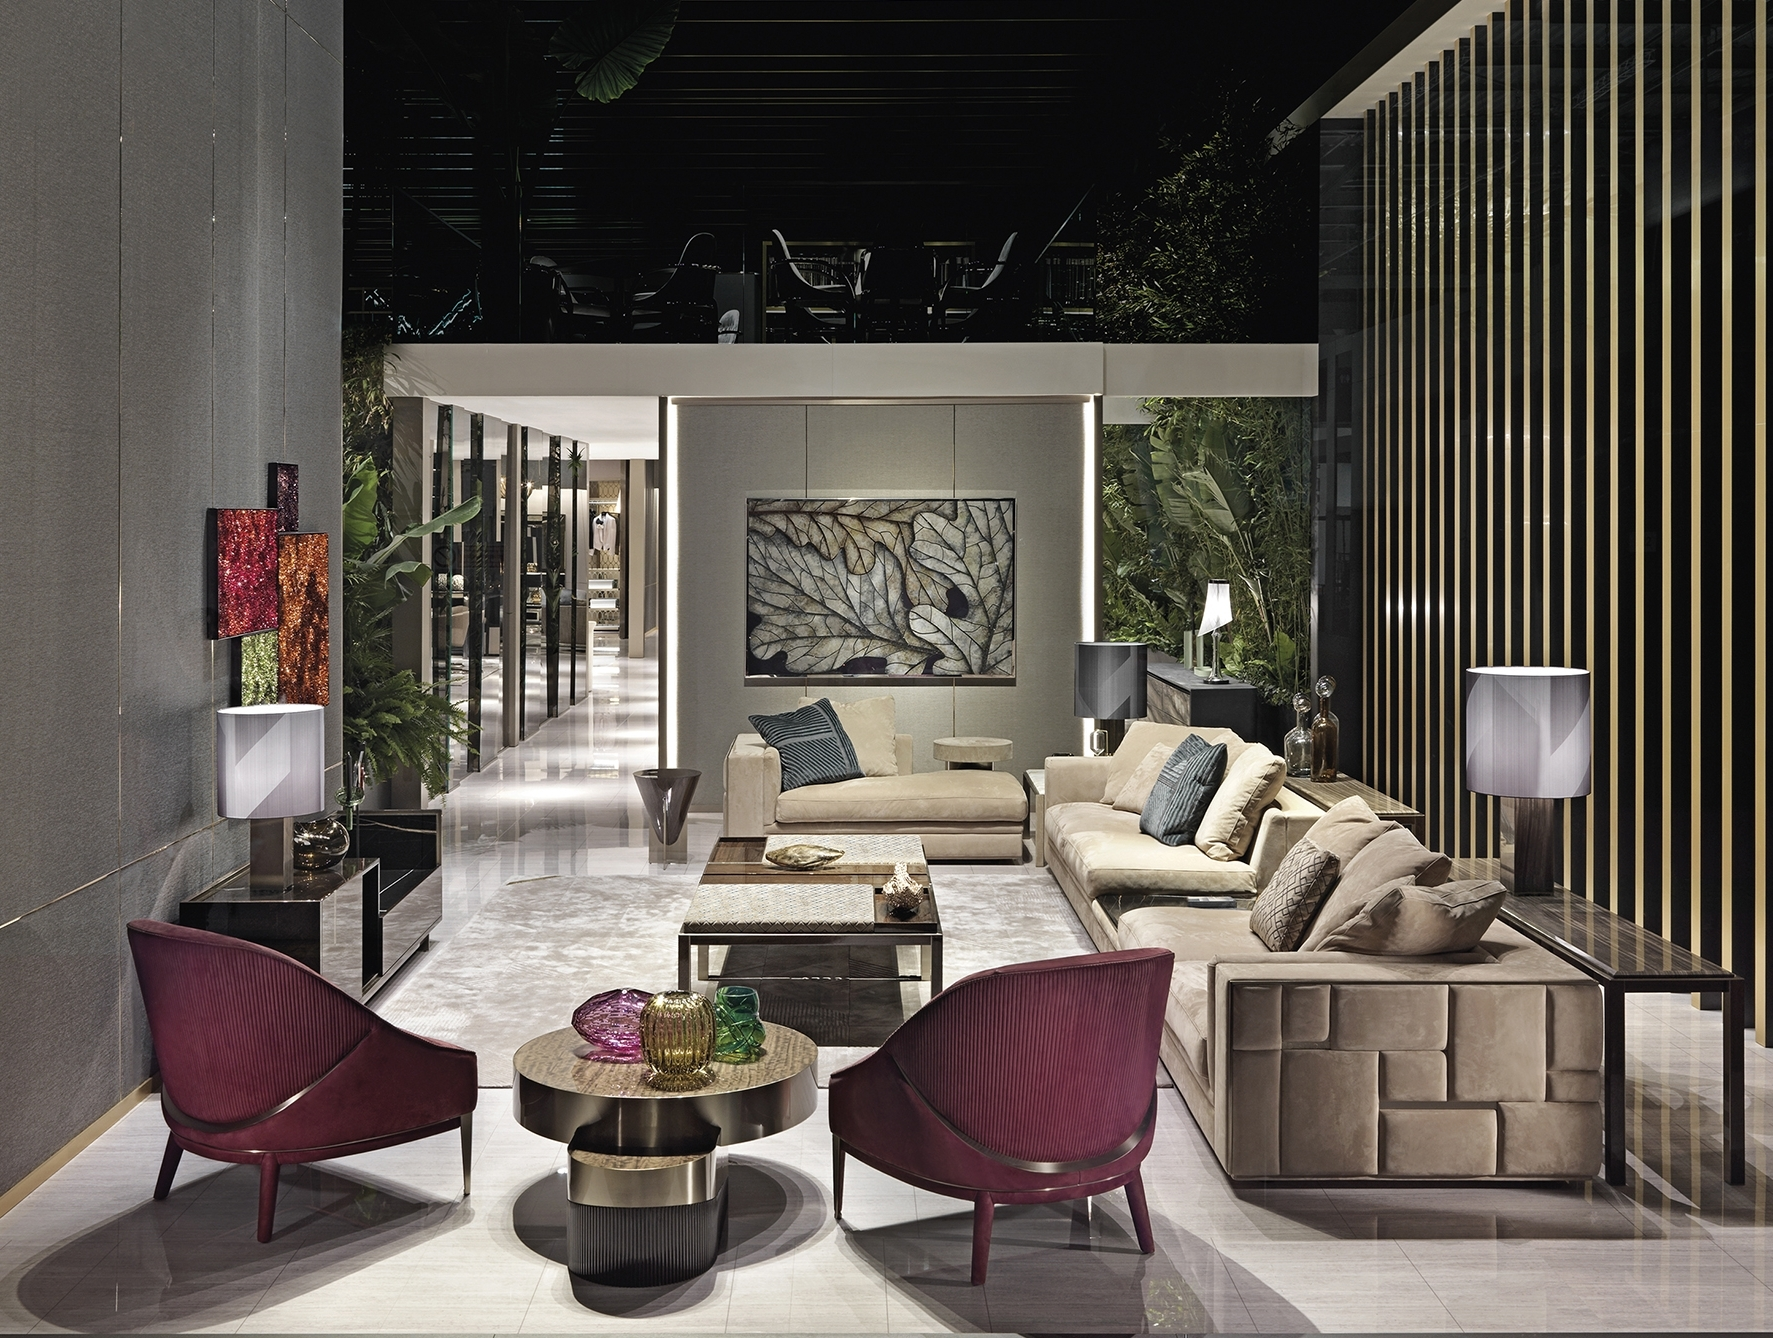 Luxury Sofas Regarding Most Current Italian Designer Luxury High End Sofas & Sofa Chairs: Nella Vetrina (View 14 of 20)